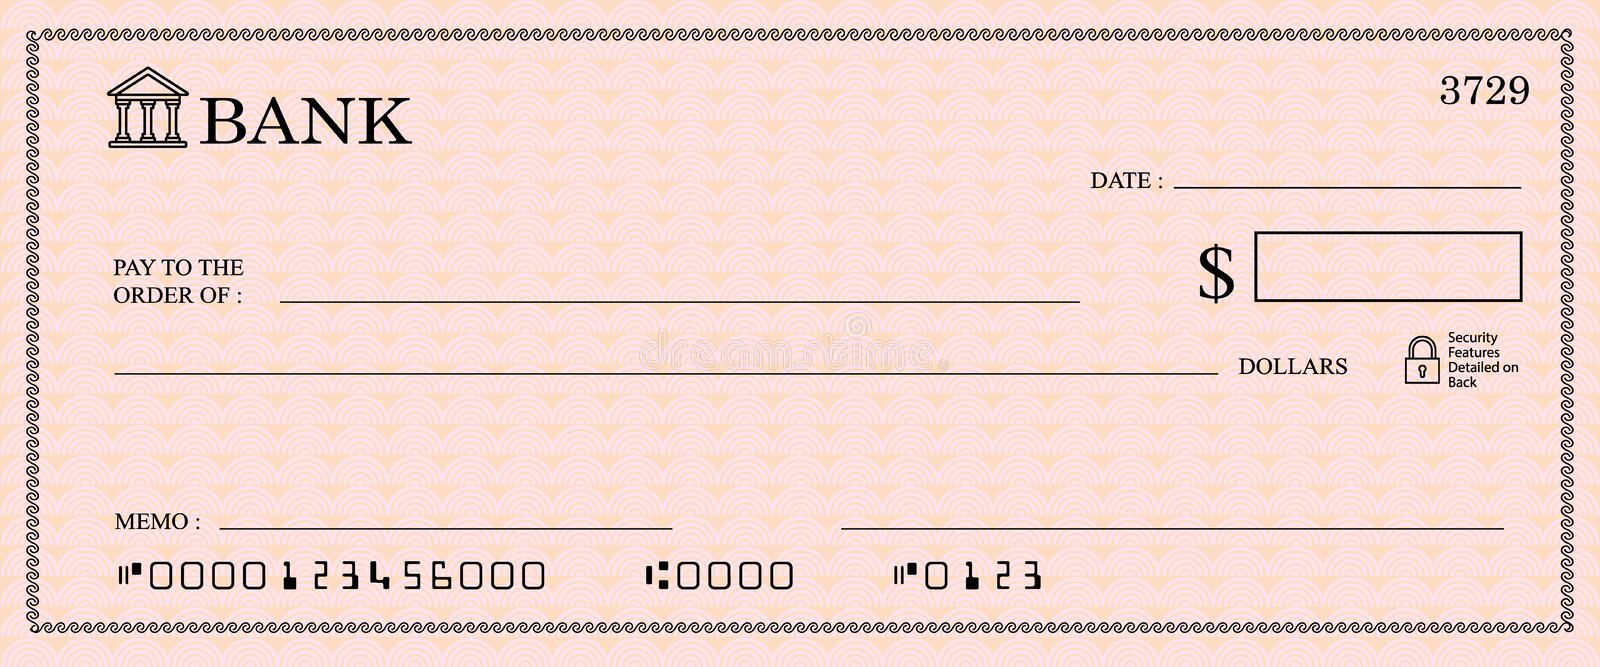 Blank bank Cheque vector illustration